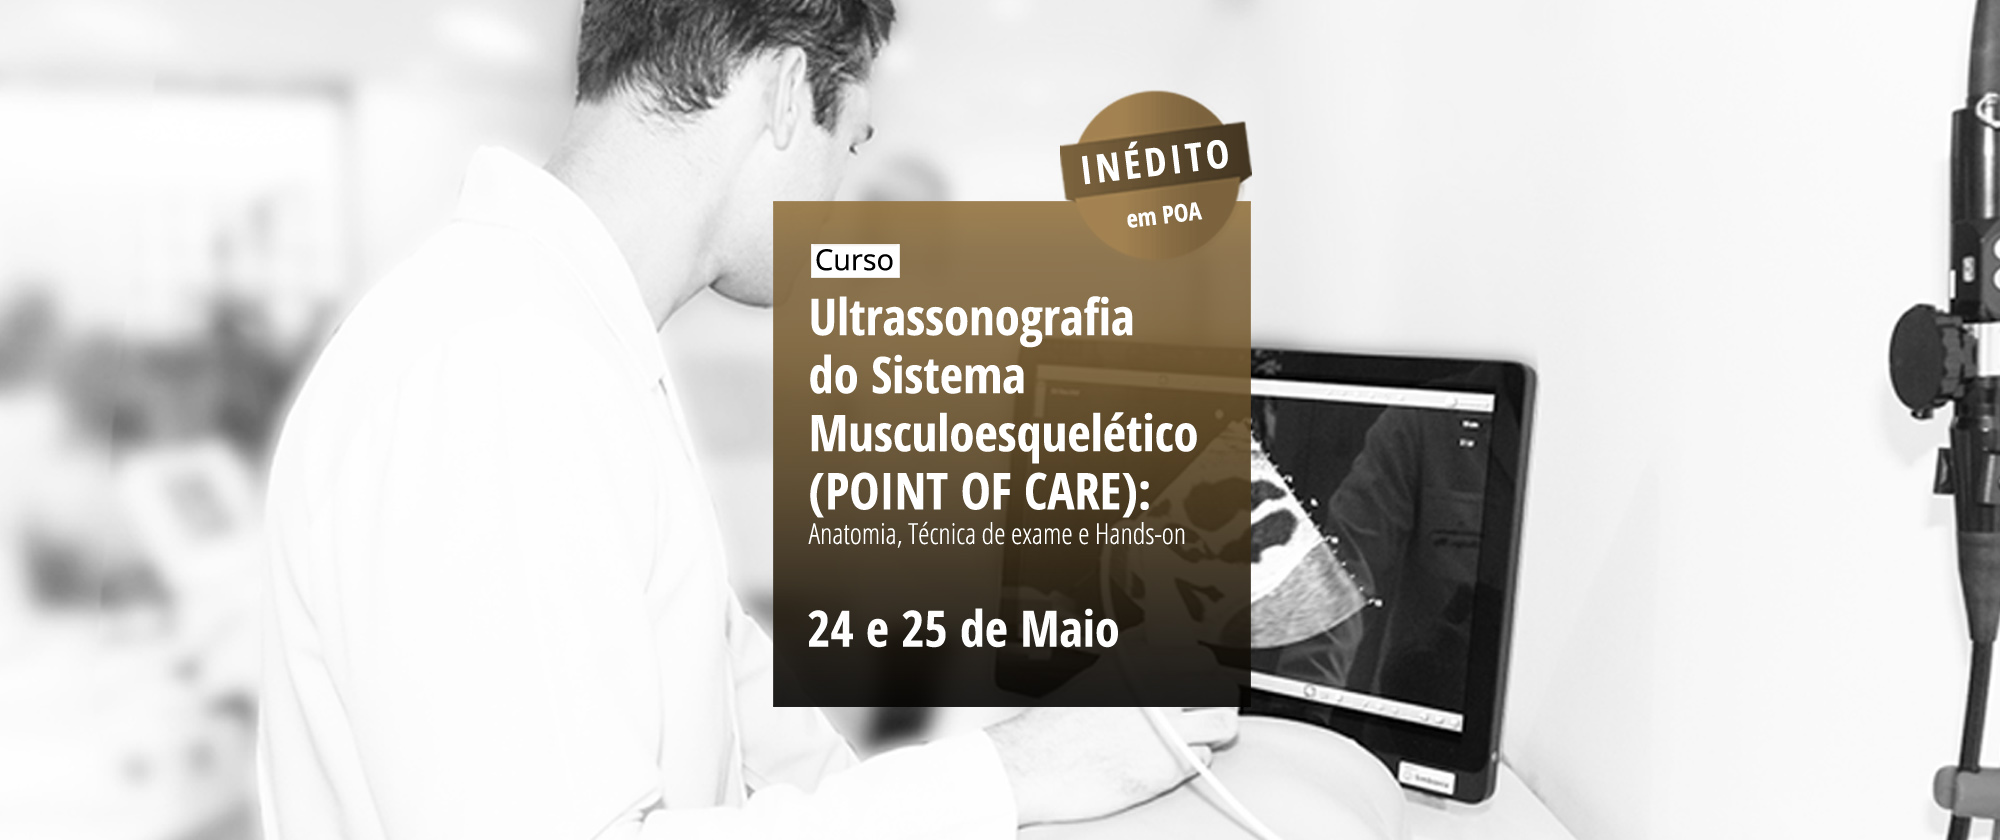 Curso de Ultrassonografia do Sistema Musculoesquelético (POINT OF CARE): Anatomia, Técnica de exame e Hands-on